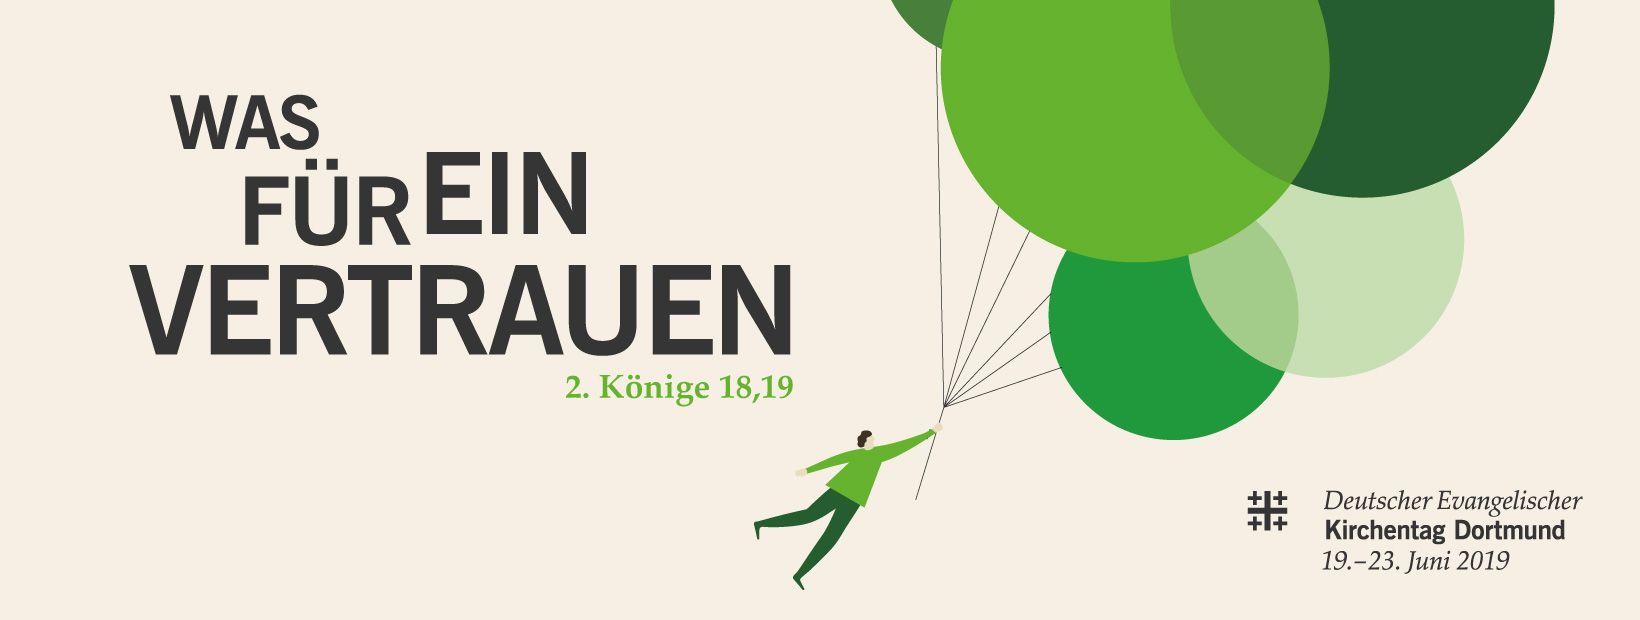 https://dxz7zkp528hul.cloudfront.net/production/htdocs/fileadmin/dateien/zzz_NEUER_BAUM/Service/Downloads/Plakat/DEKT37_Facebook_Header.jpg